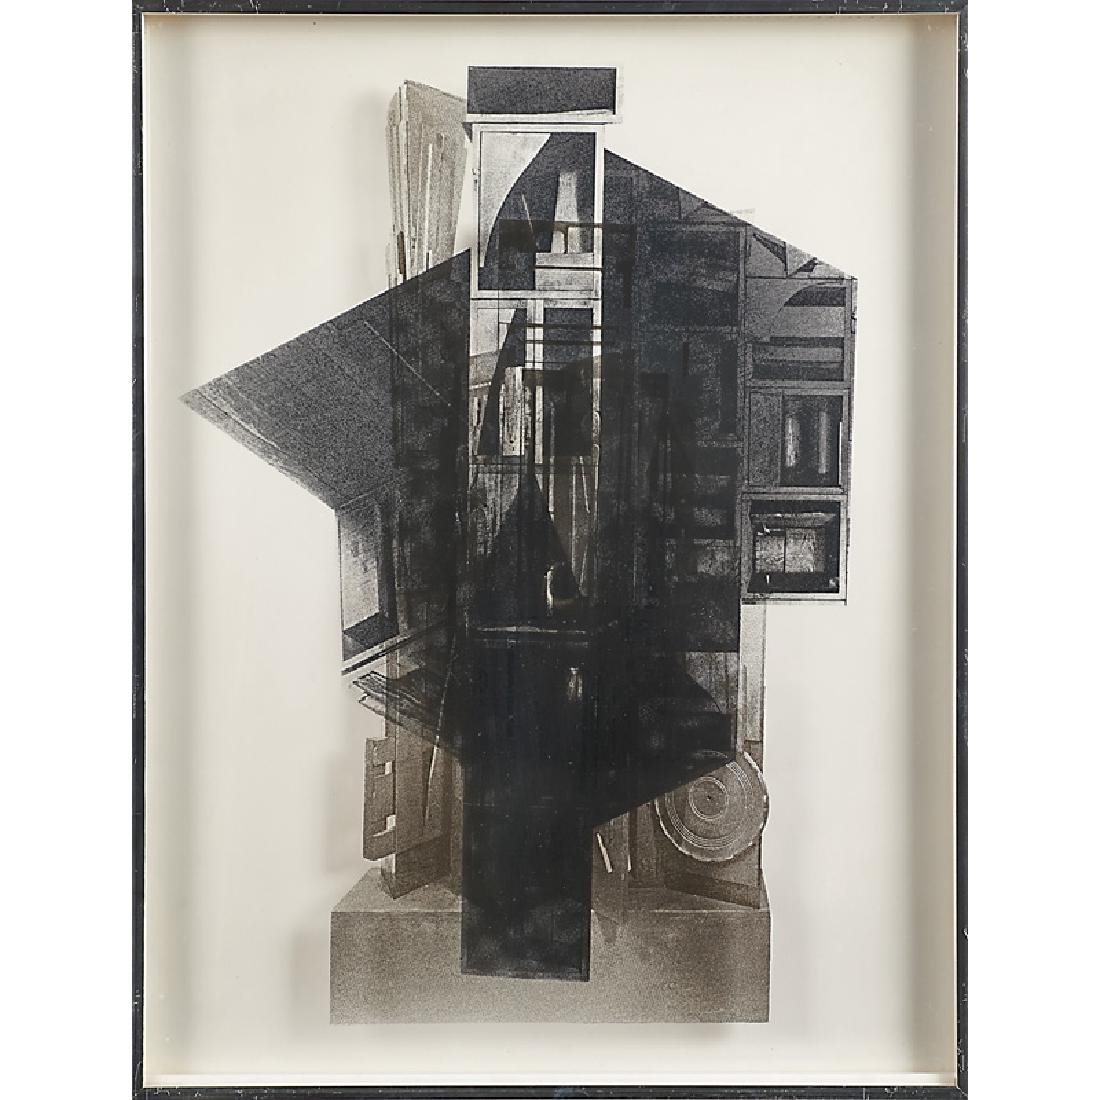 LOUISE NEVELSON (American, 1899-1988)